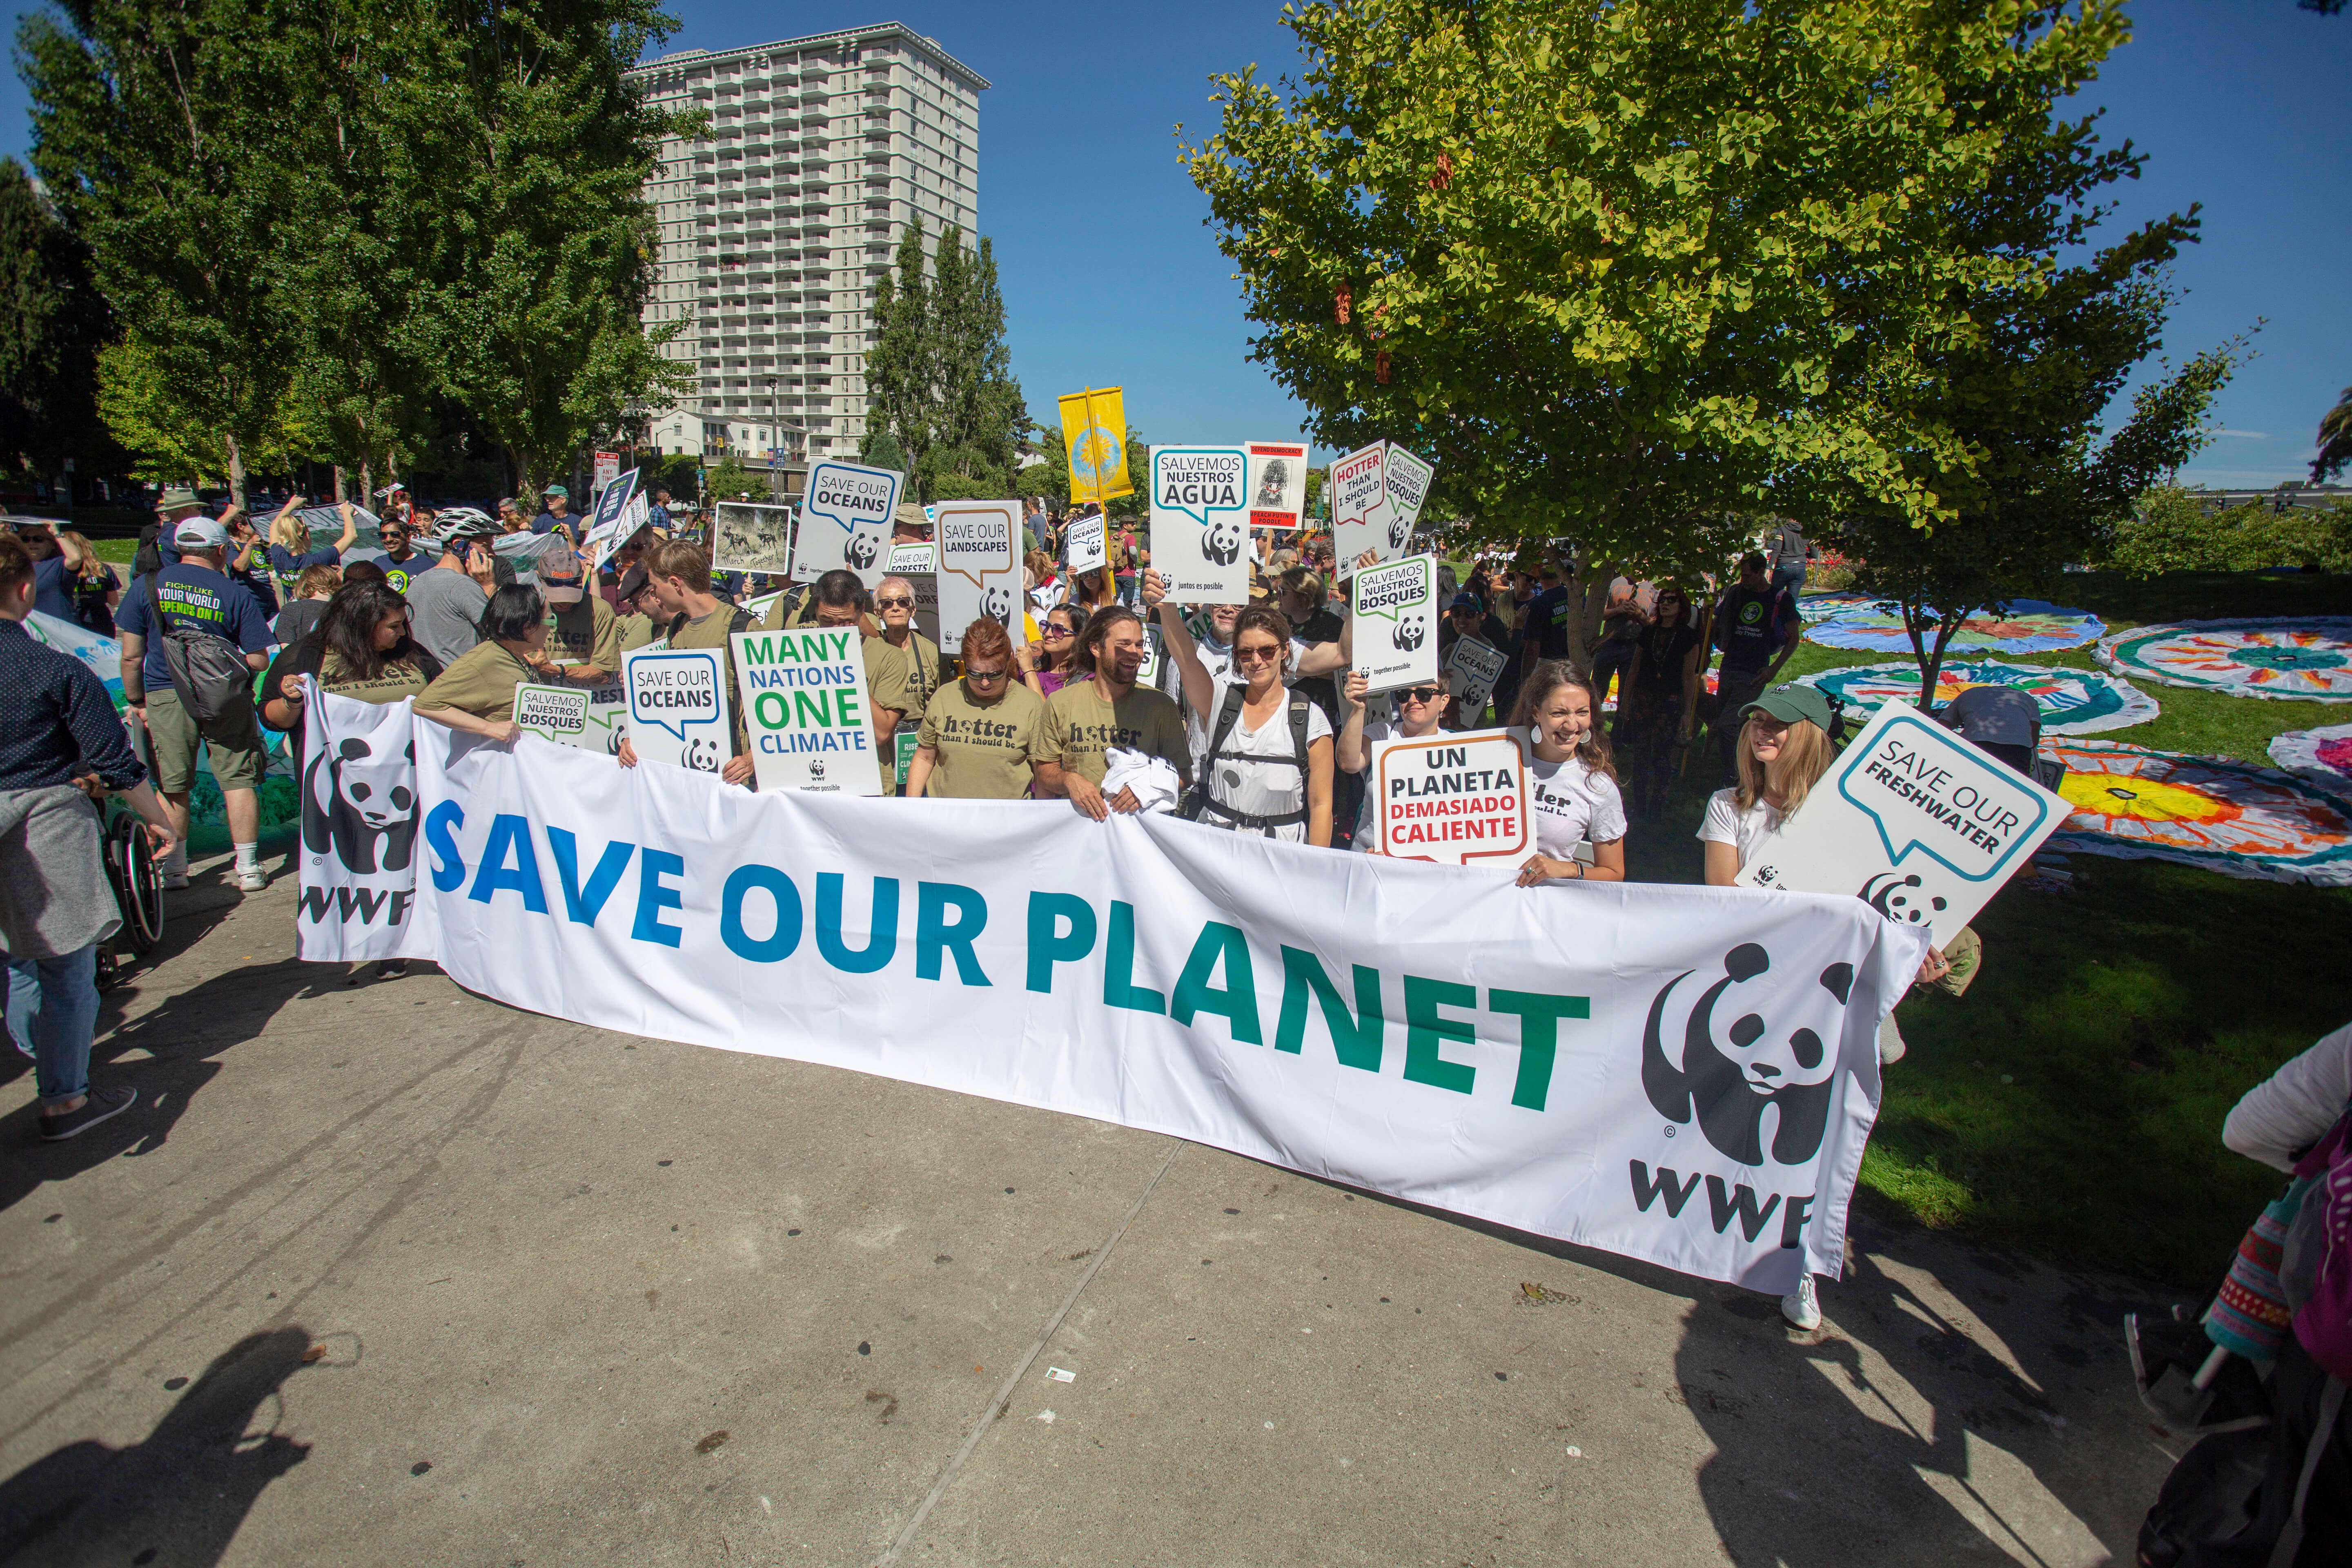 WWF Climate March